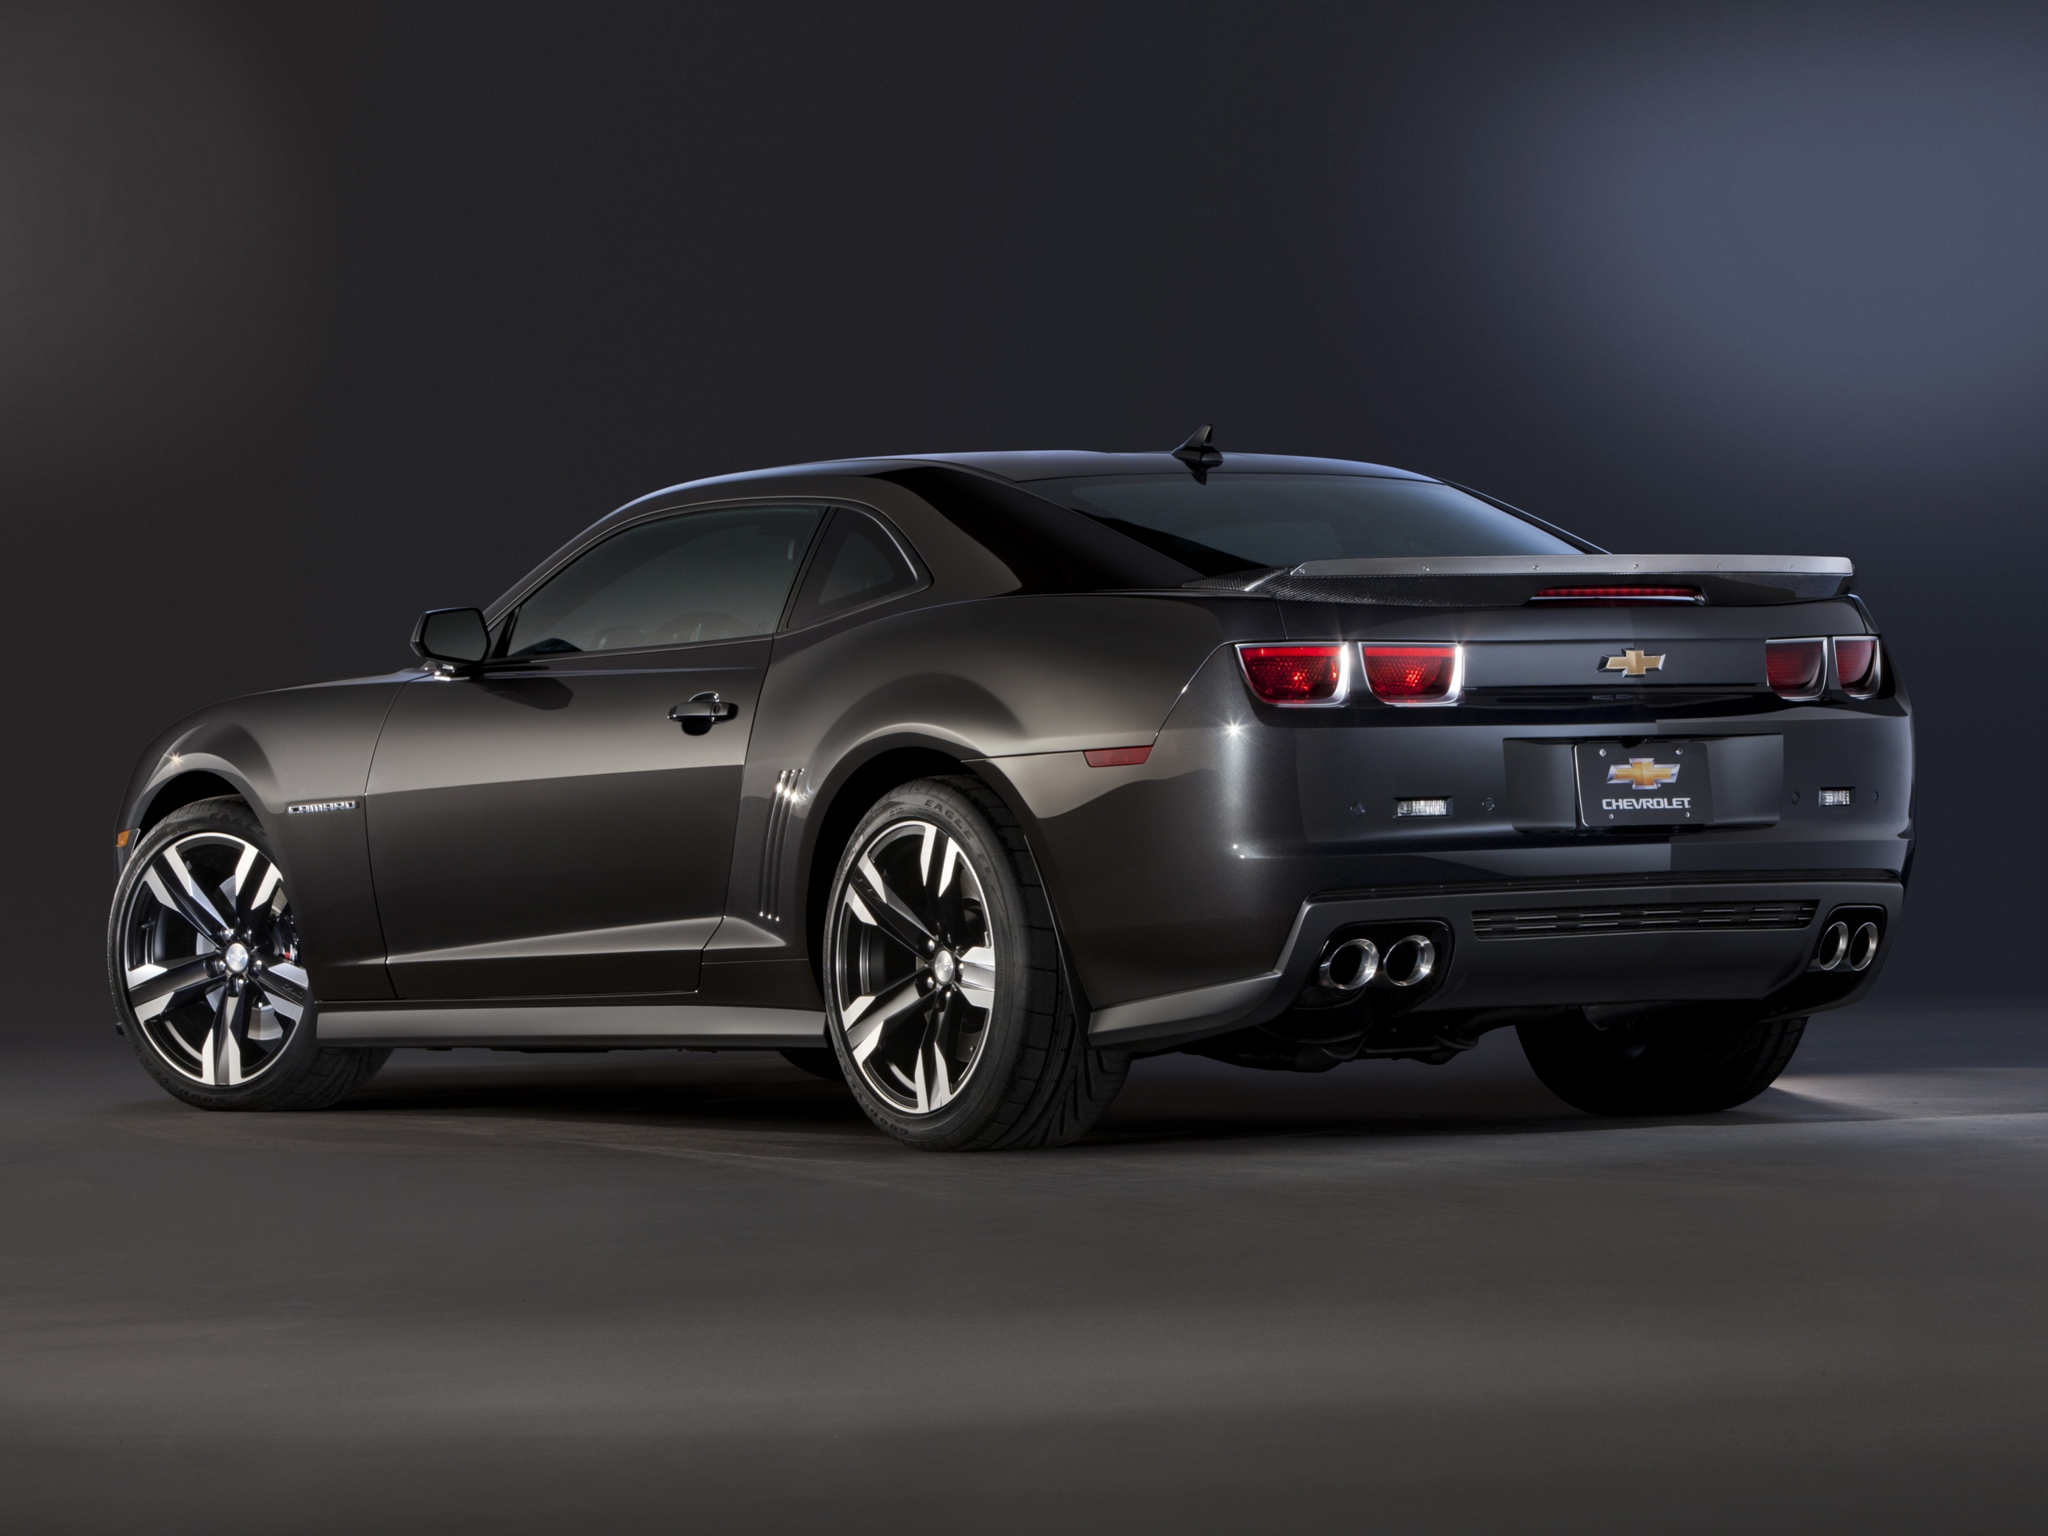 Wallpapers Chevrolet Camaro ZL1 Carbon Concept 2011 Wallpapers 2048x1536